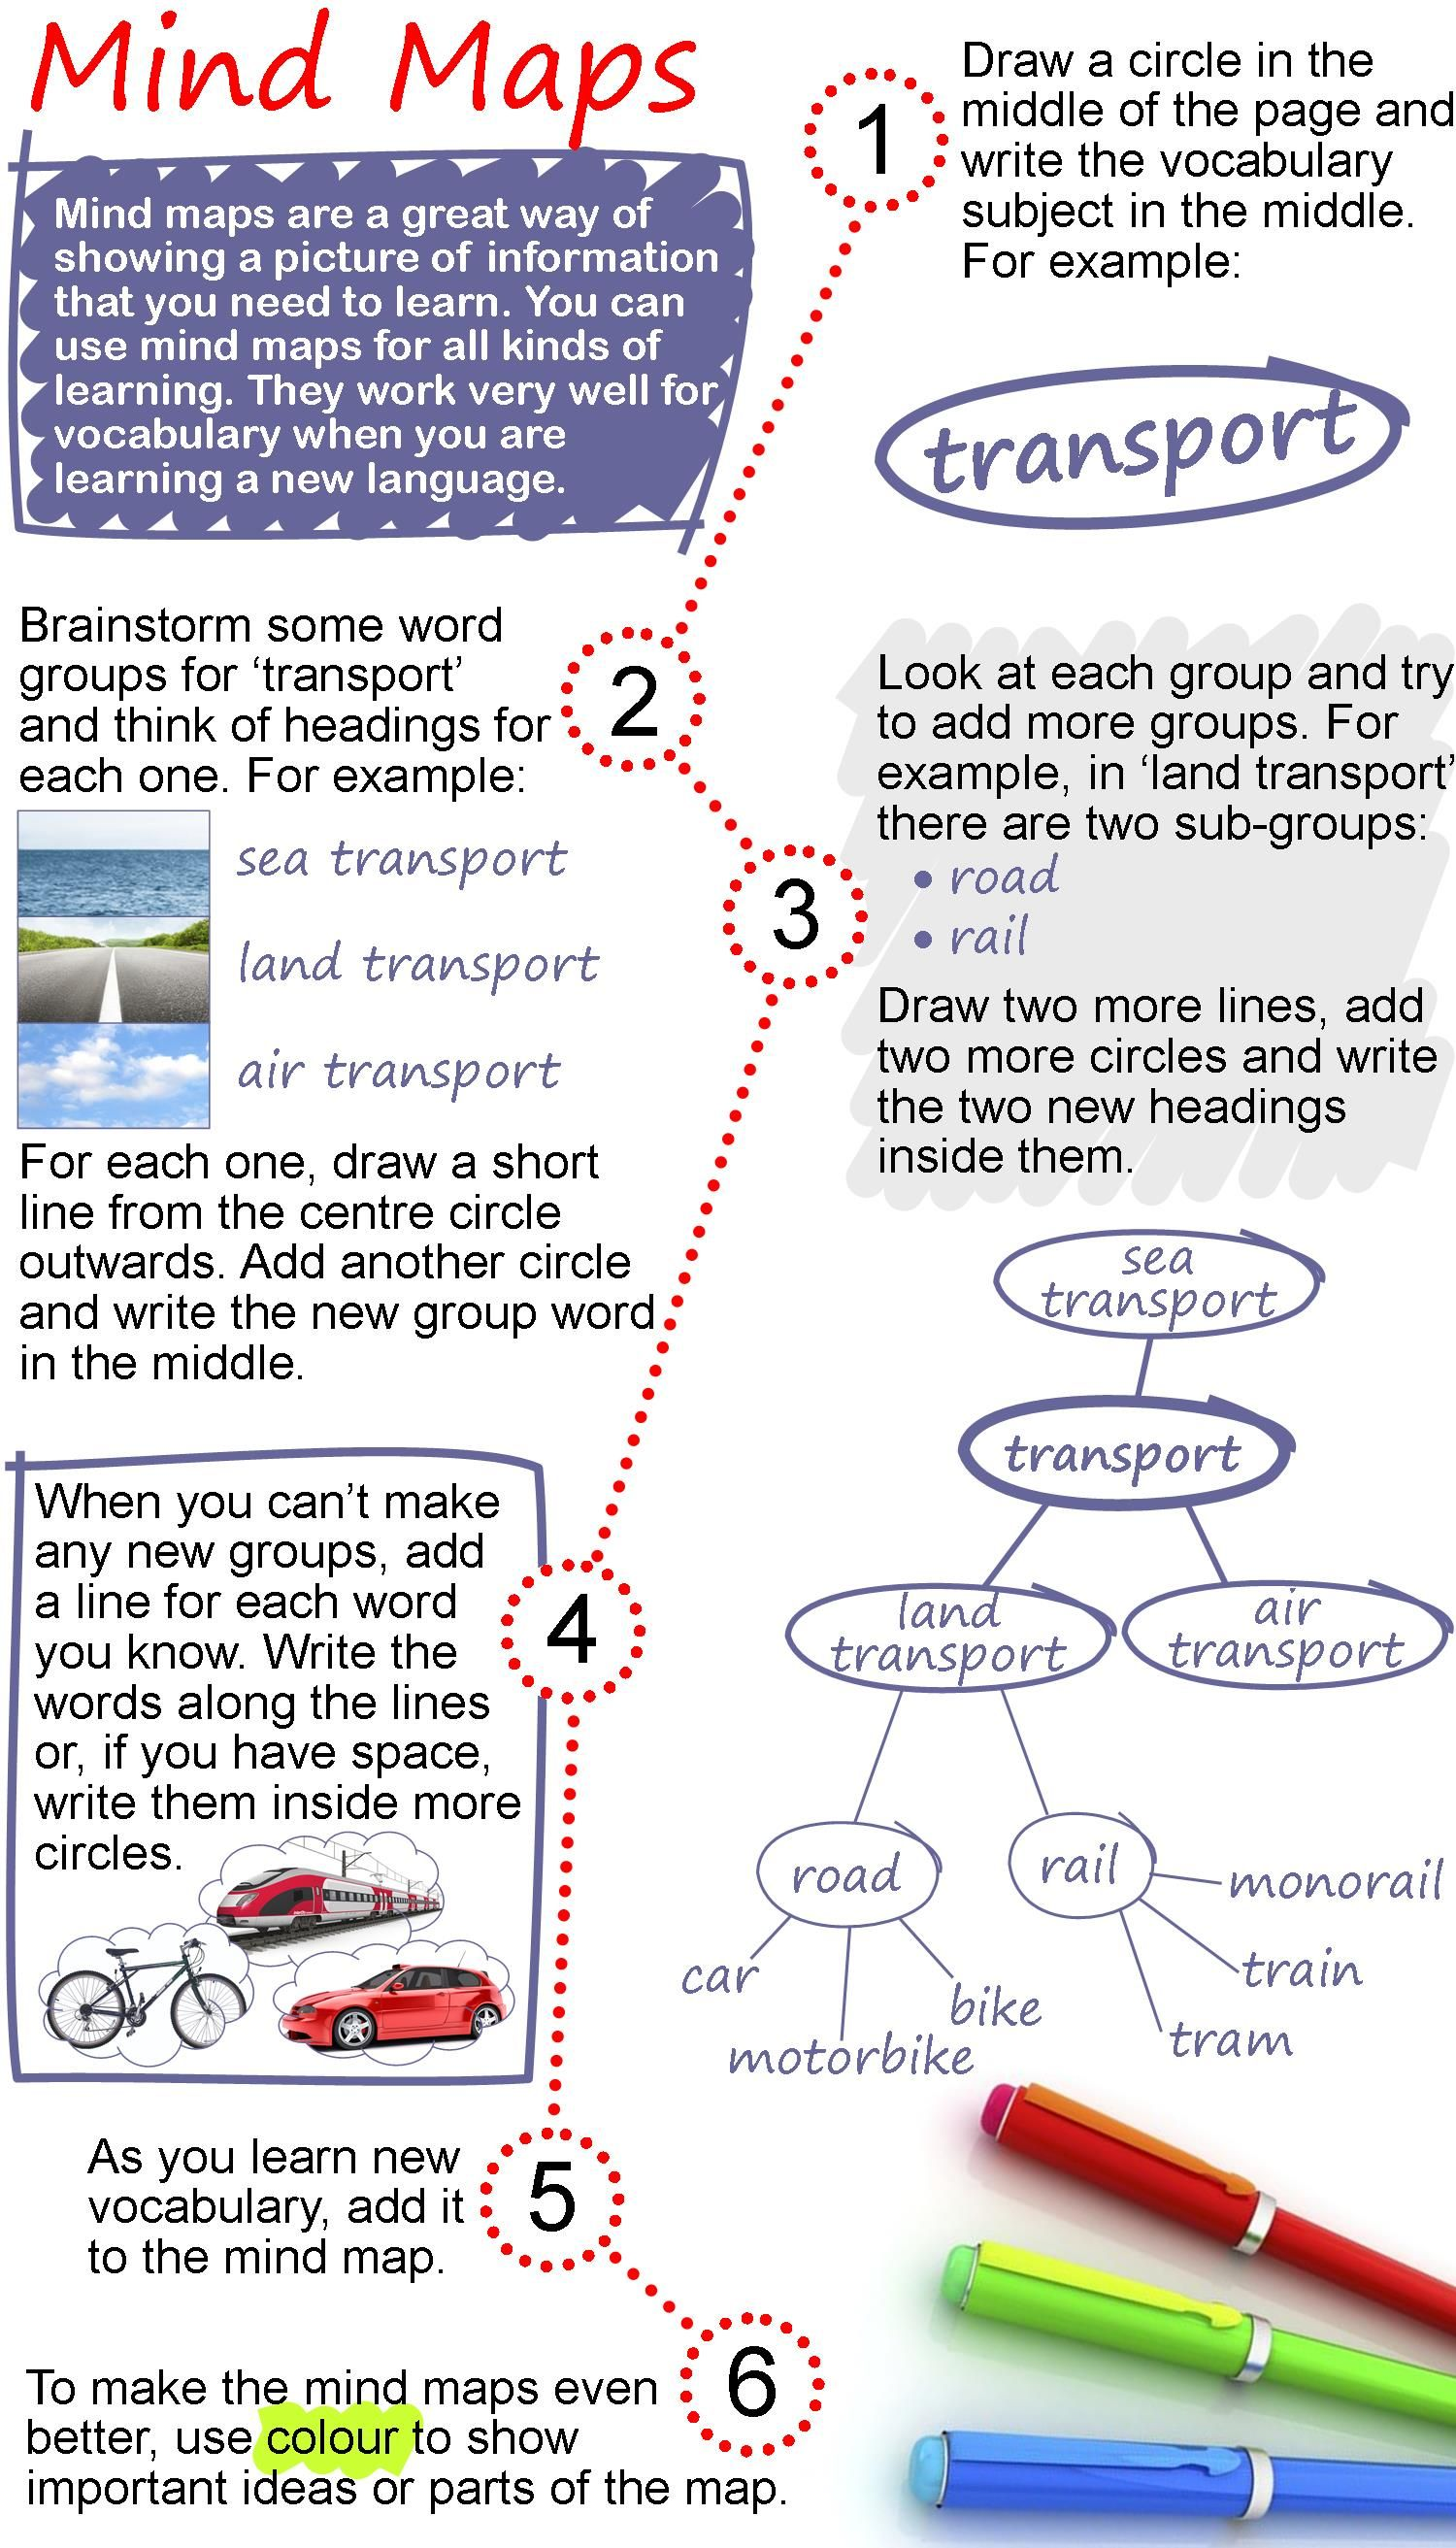 Mind maps reading skills british council and english language mind mapsad the text about mind maps and then do the exercises to practise and improve your reading skills ccuart Image collections